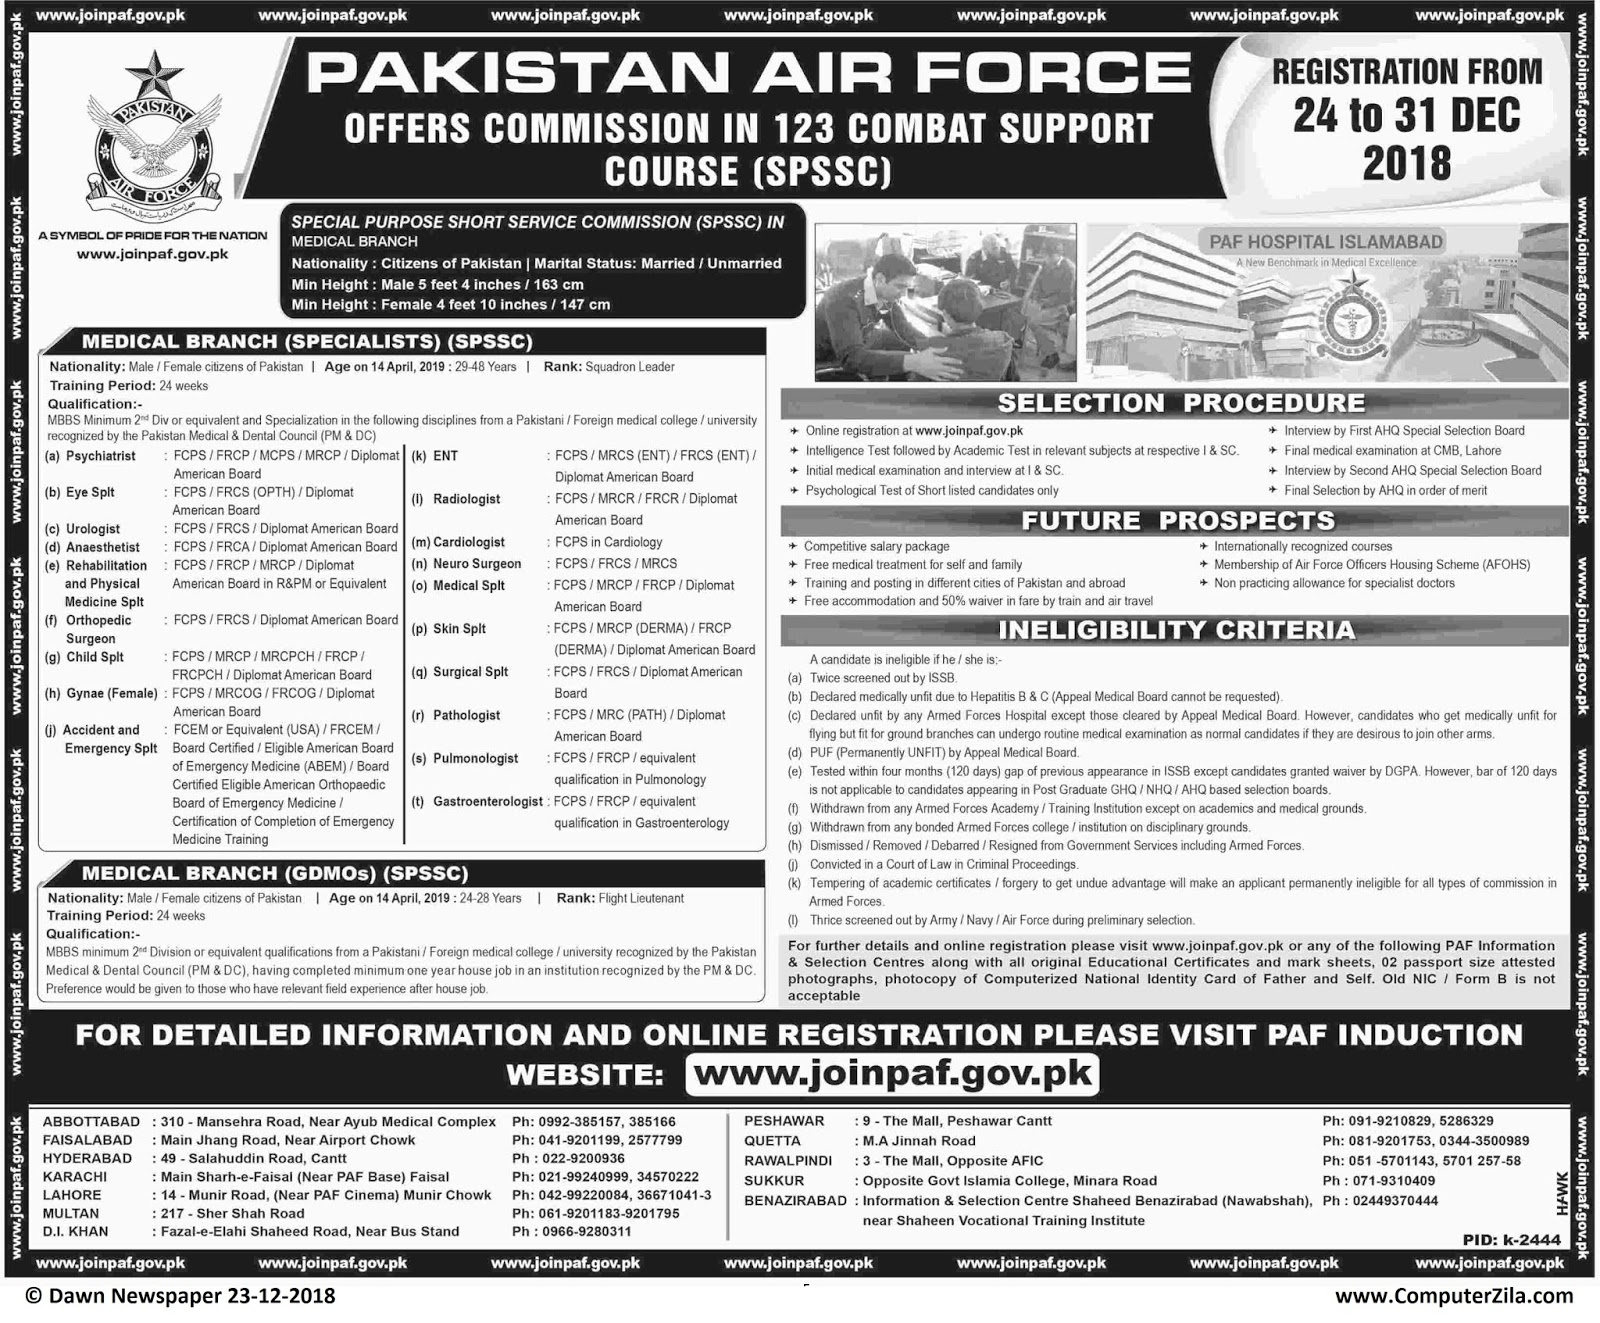 PAF Commission in 123 Combat Support Course (SPSSC) at Pakistan Air Force